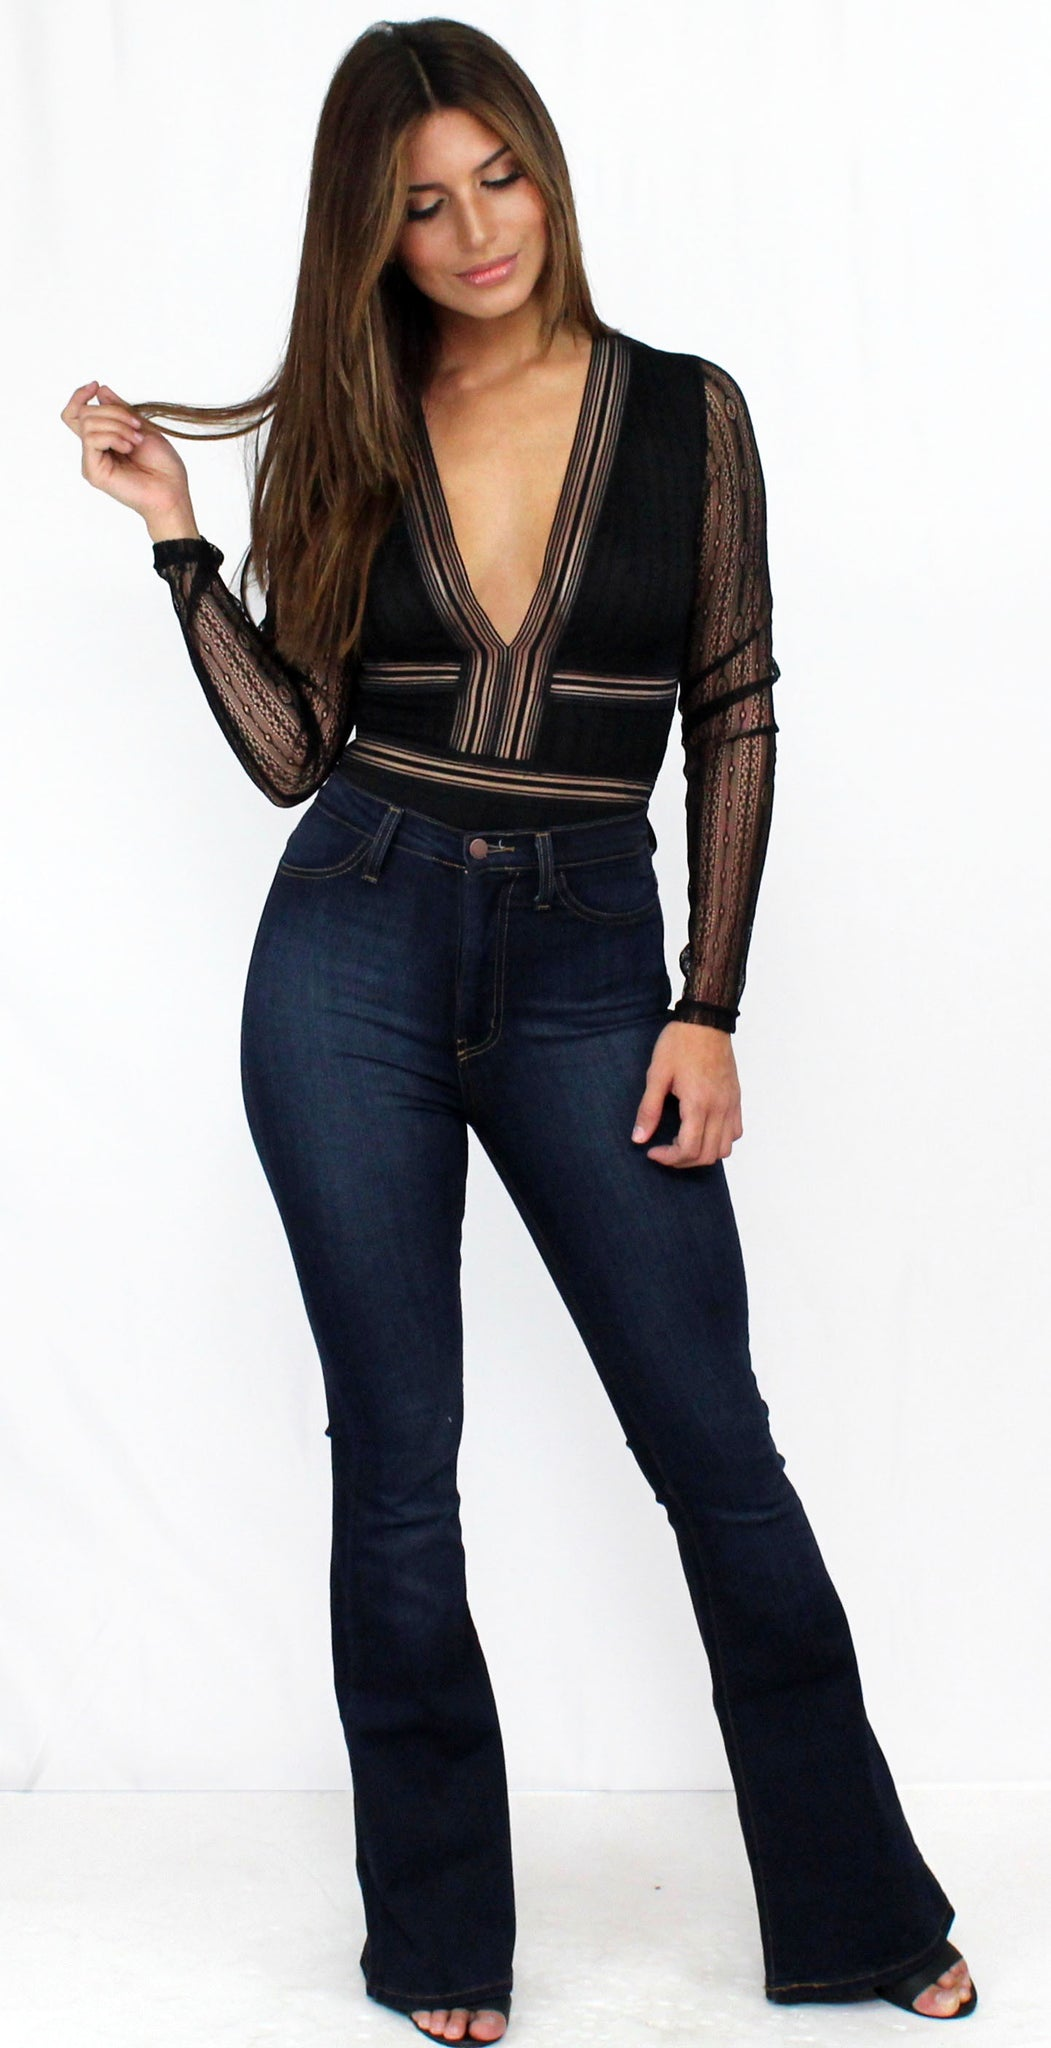 Slay It with Lace & Me Black Bodysuit